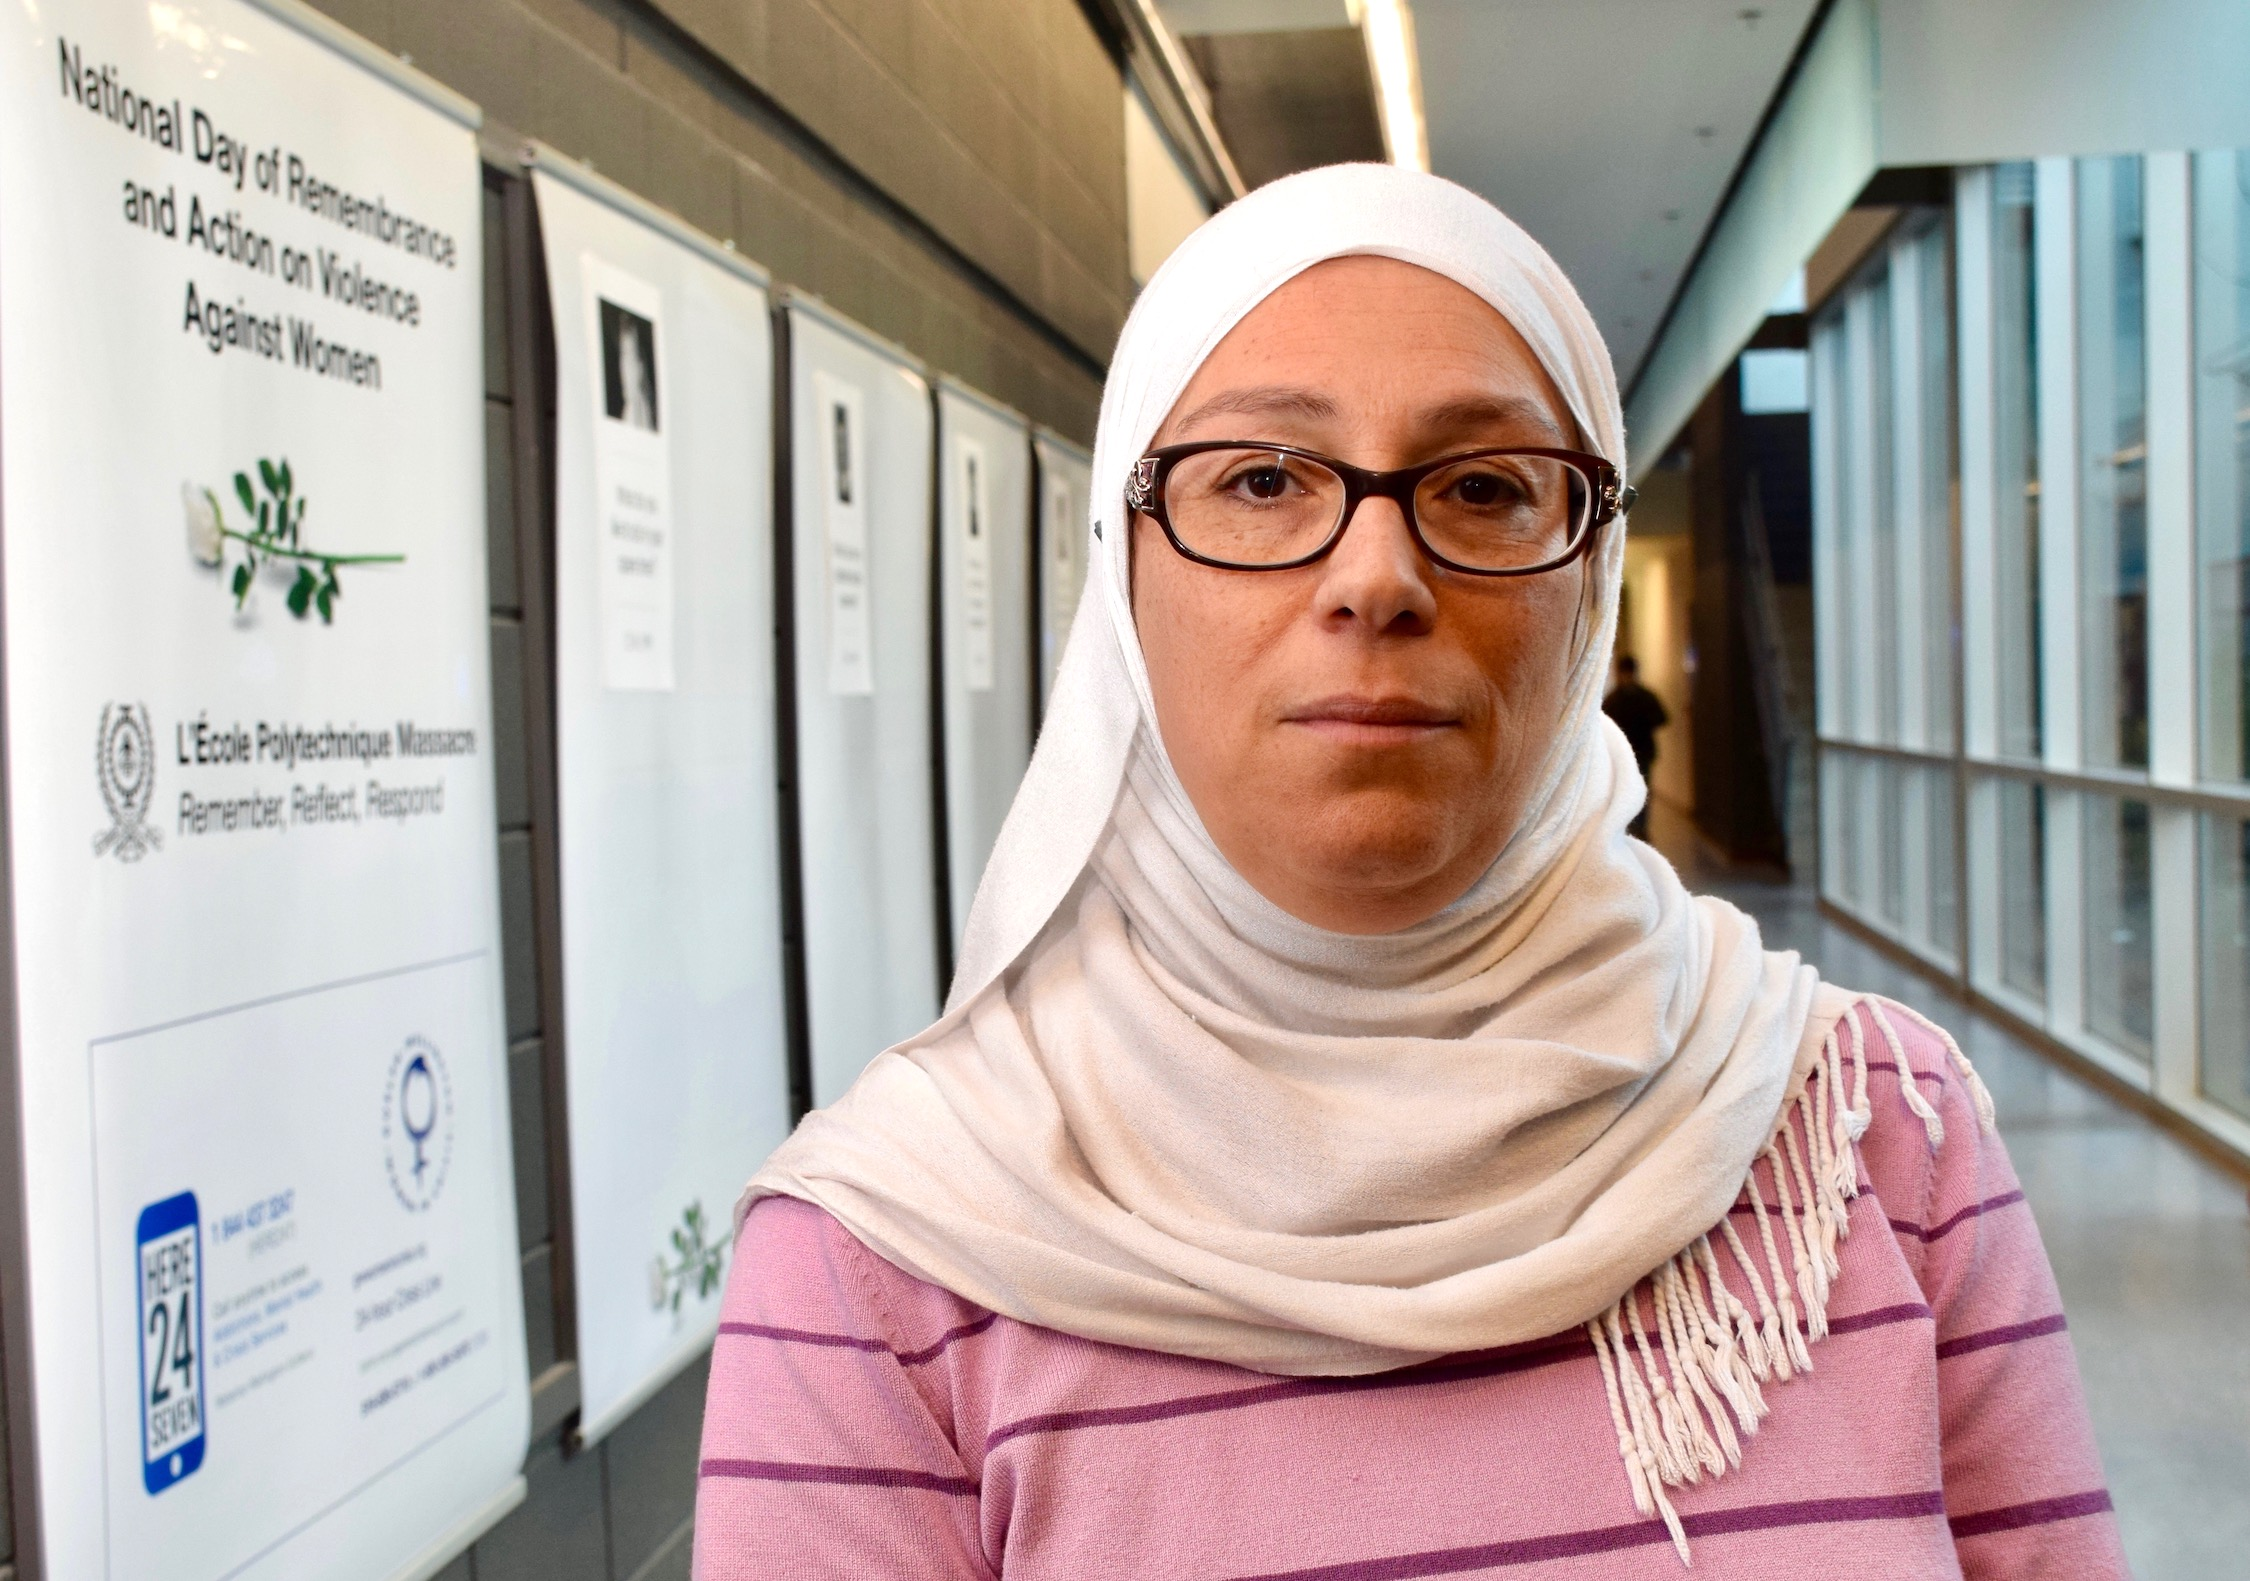 Engineering professor Sosa Moussa wearing a hijab and standing in Thornbrough Building hallway